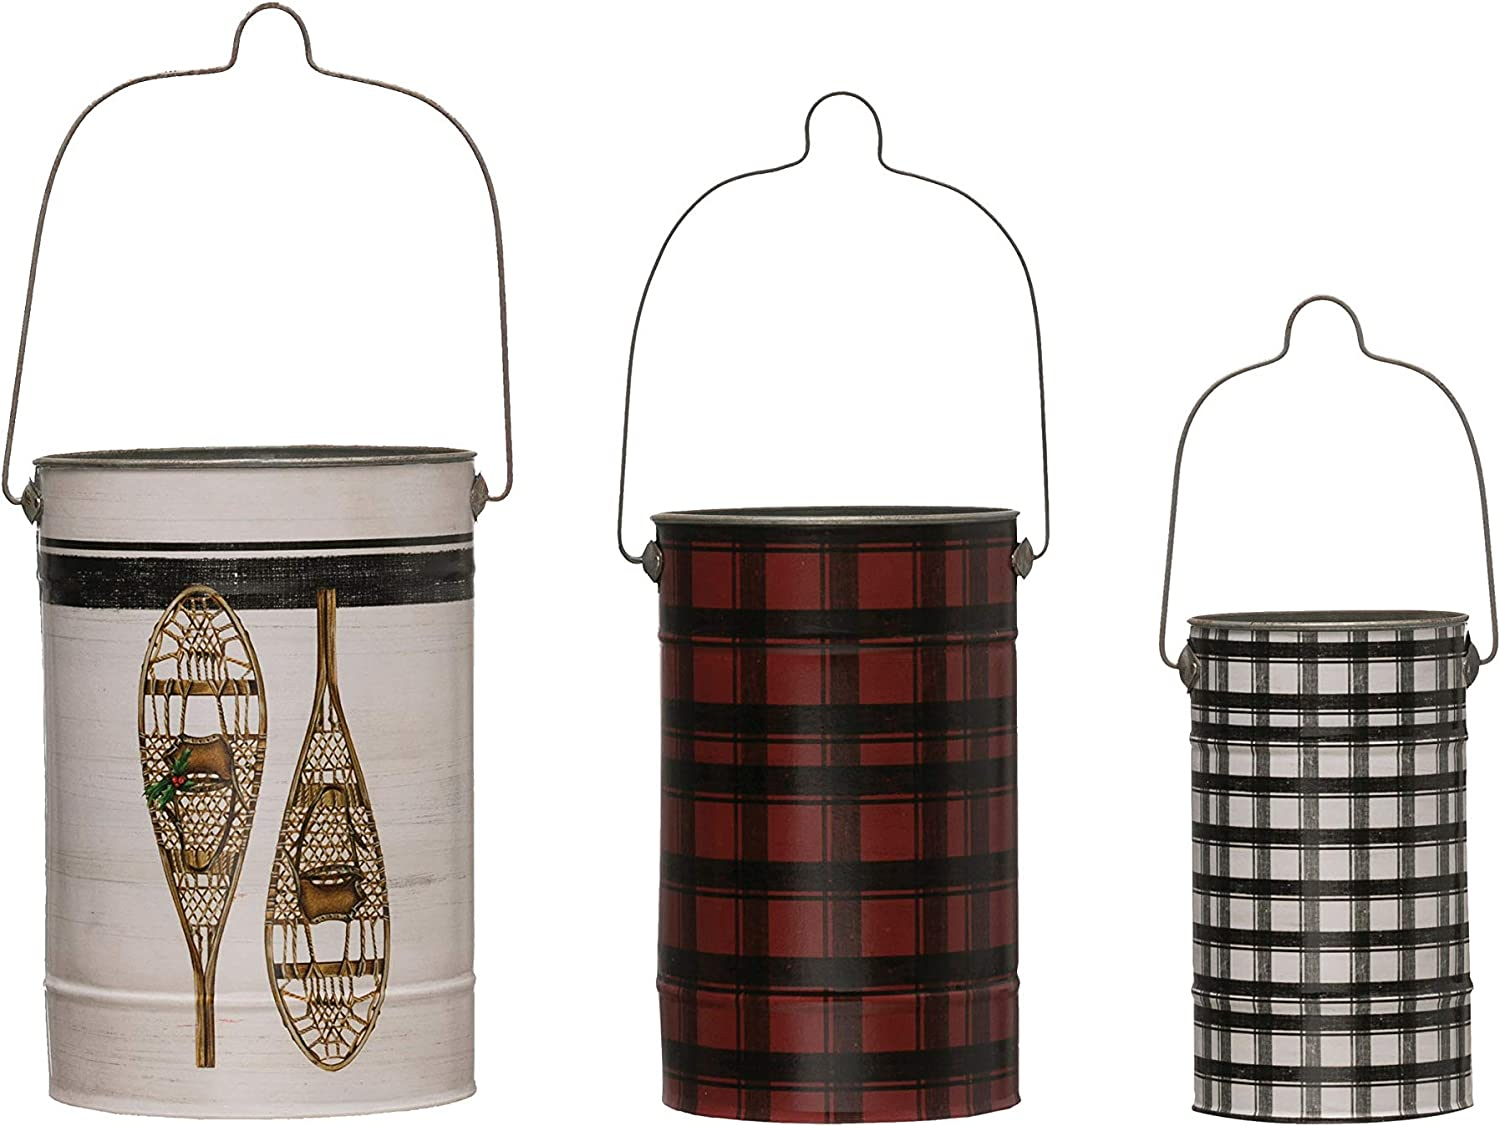 Creative Co-op Metal Buckets with Handles (Set of 3 Sizes) Containers